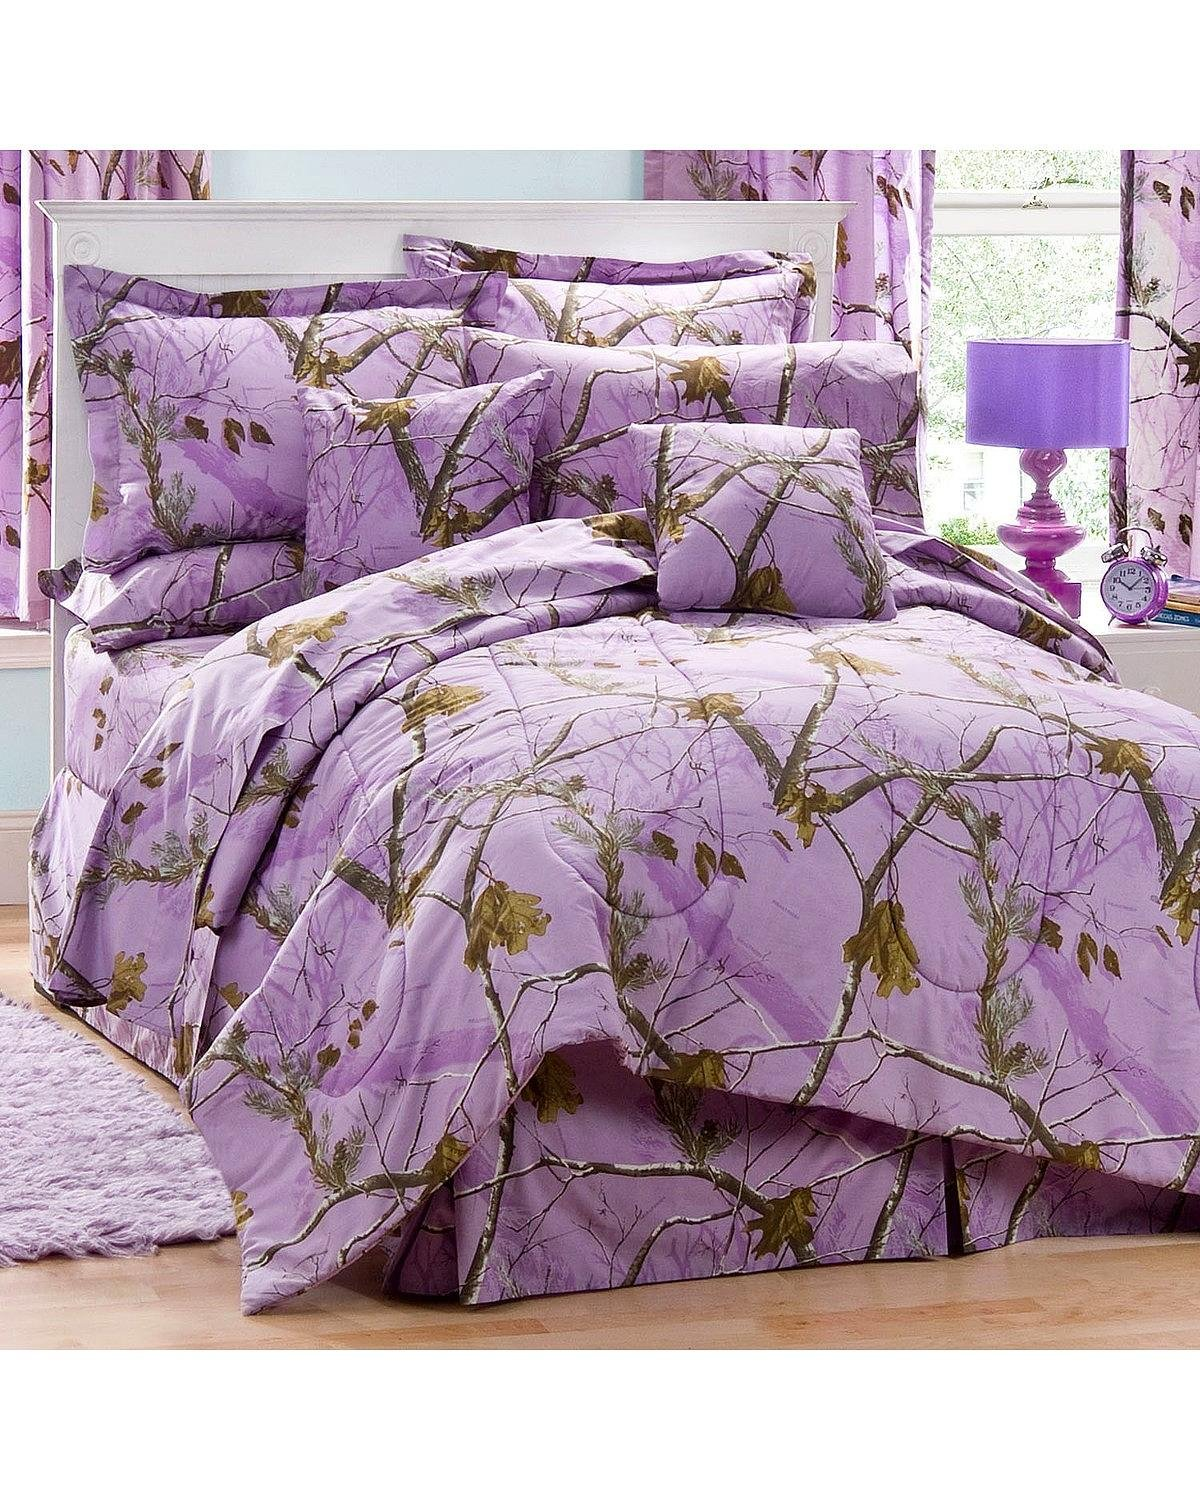 Kimlor Mills Realtree APC Comforter Set, Queen, Lavender Inc. us home KIMSN 07176000082RT